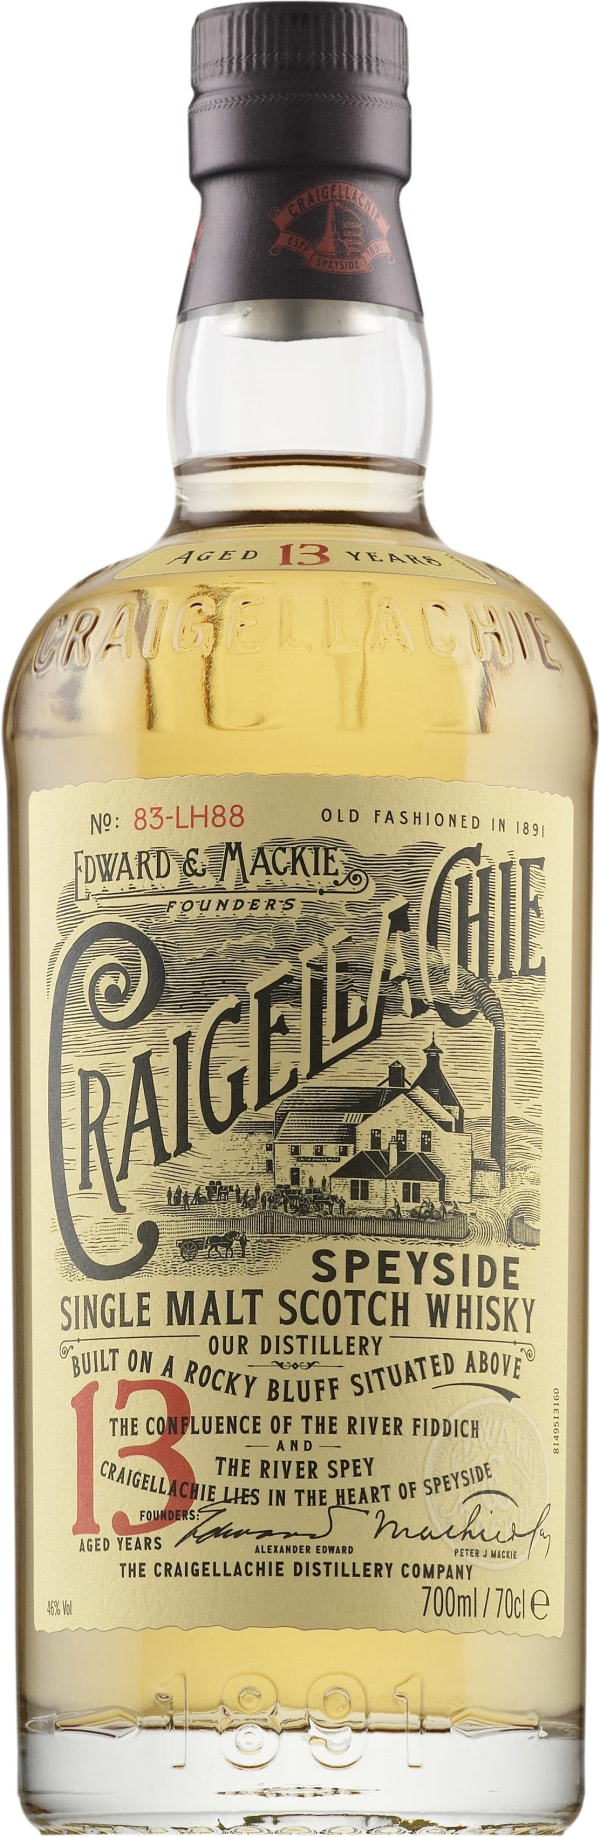 Craigellachie 13 Year Old Single Malt